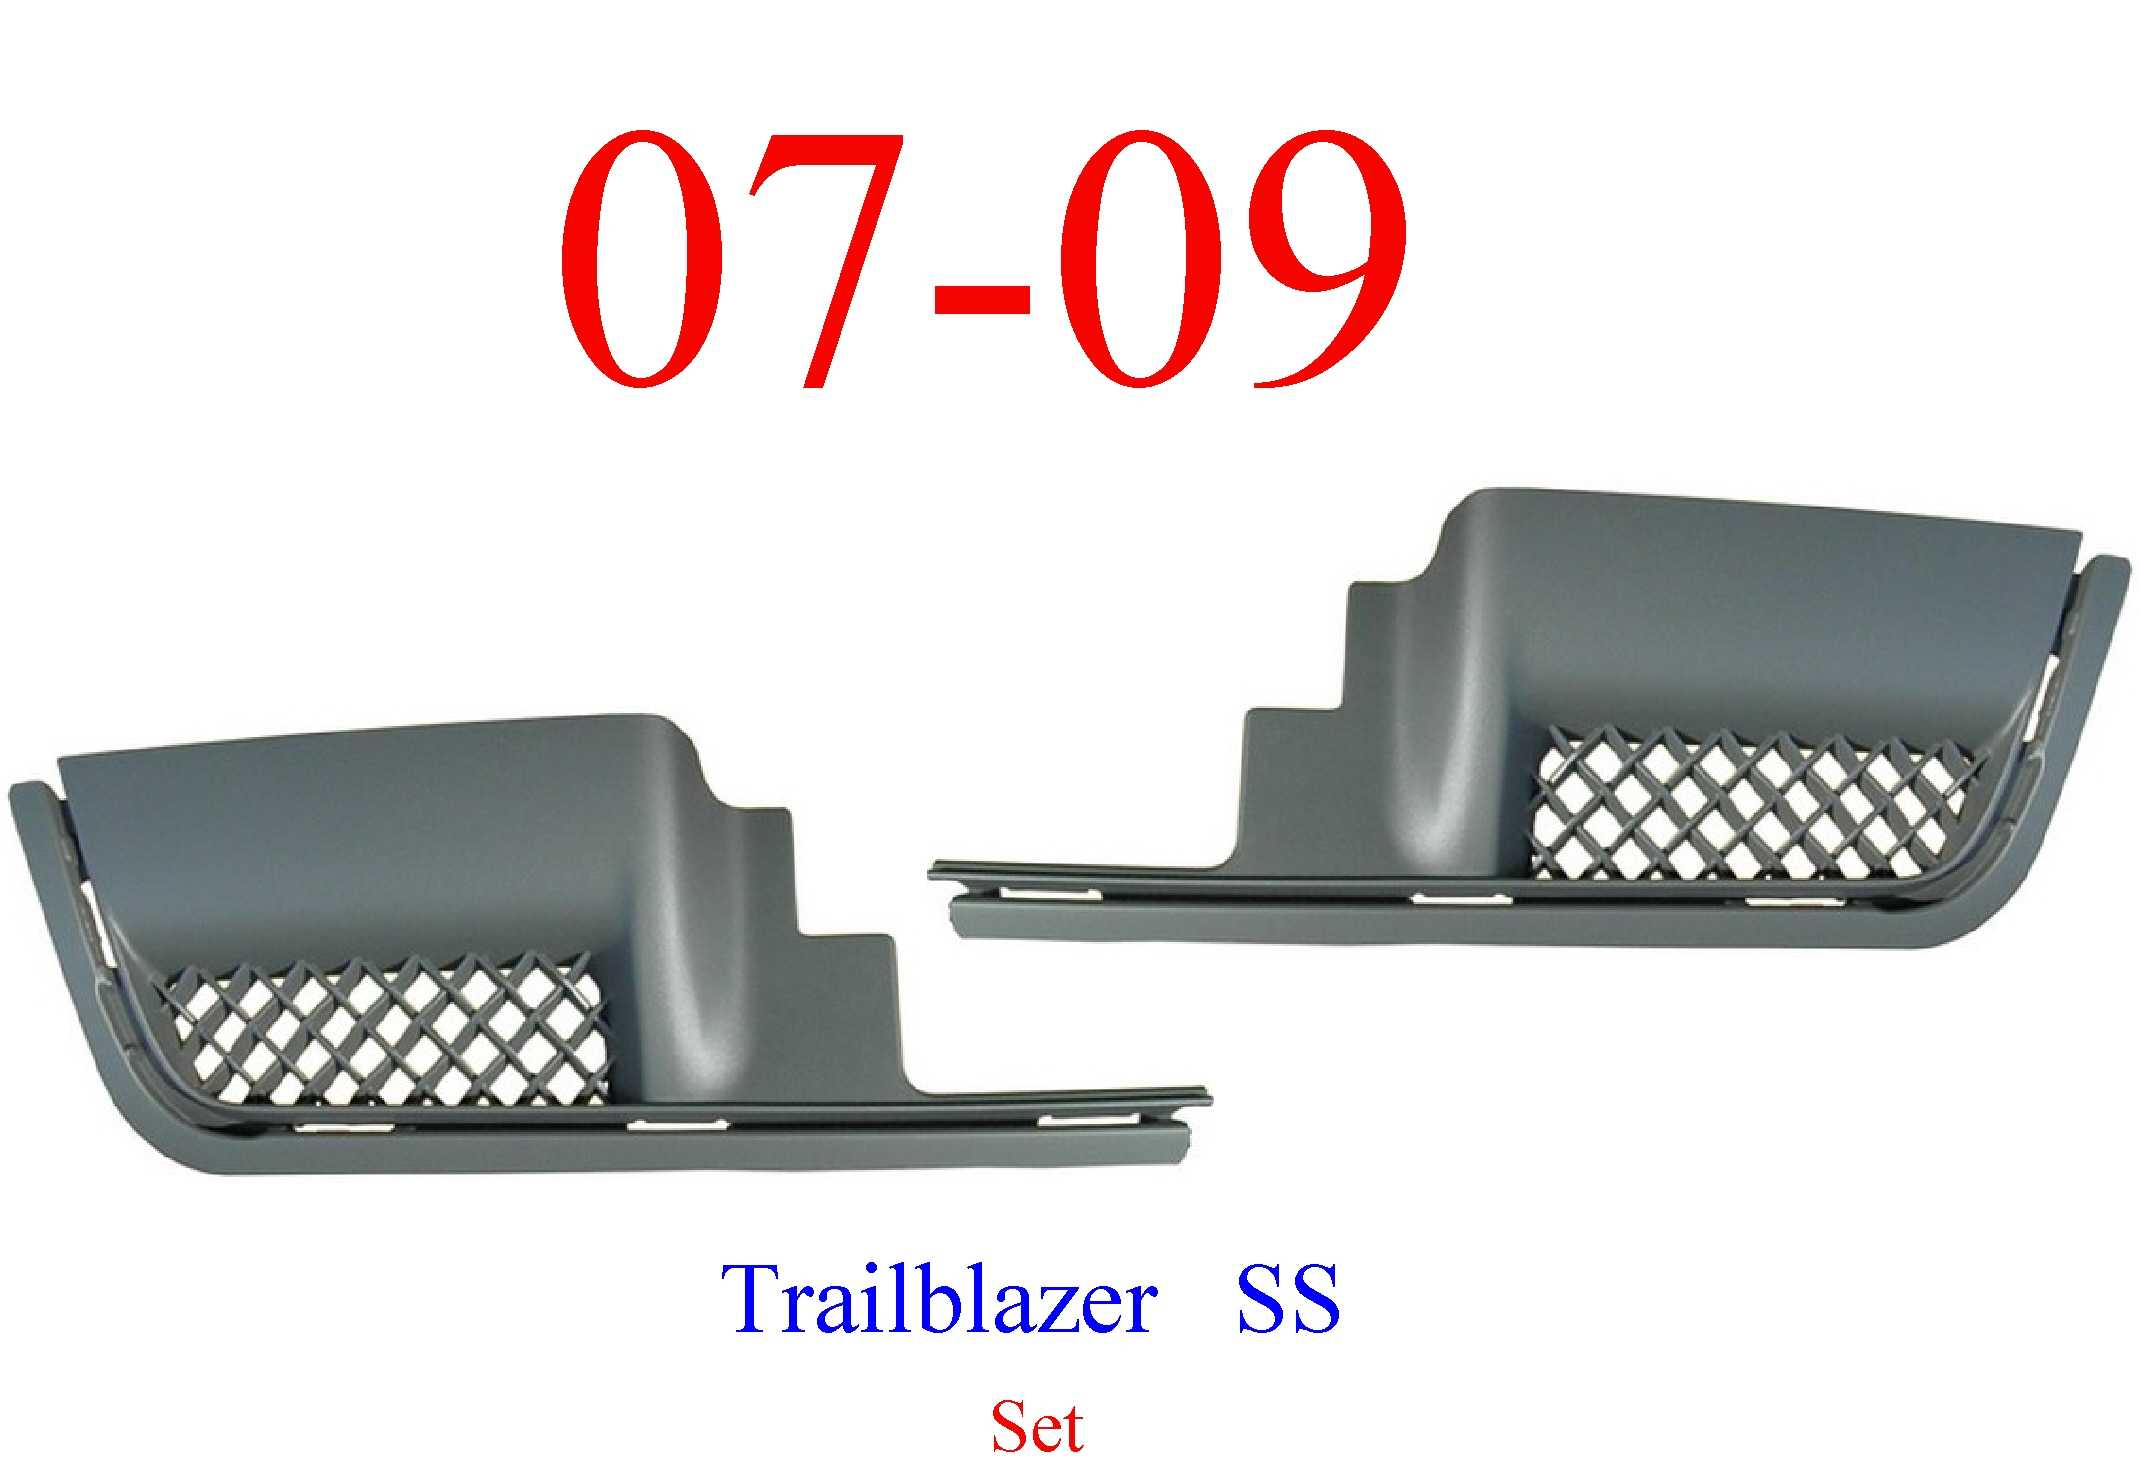 06-09 Trailblazer SS Rear Step Pad Set